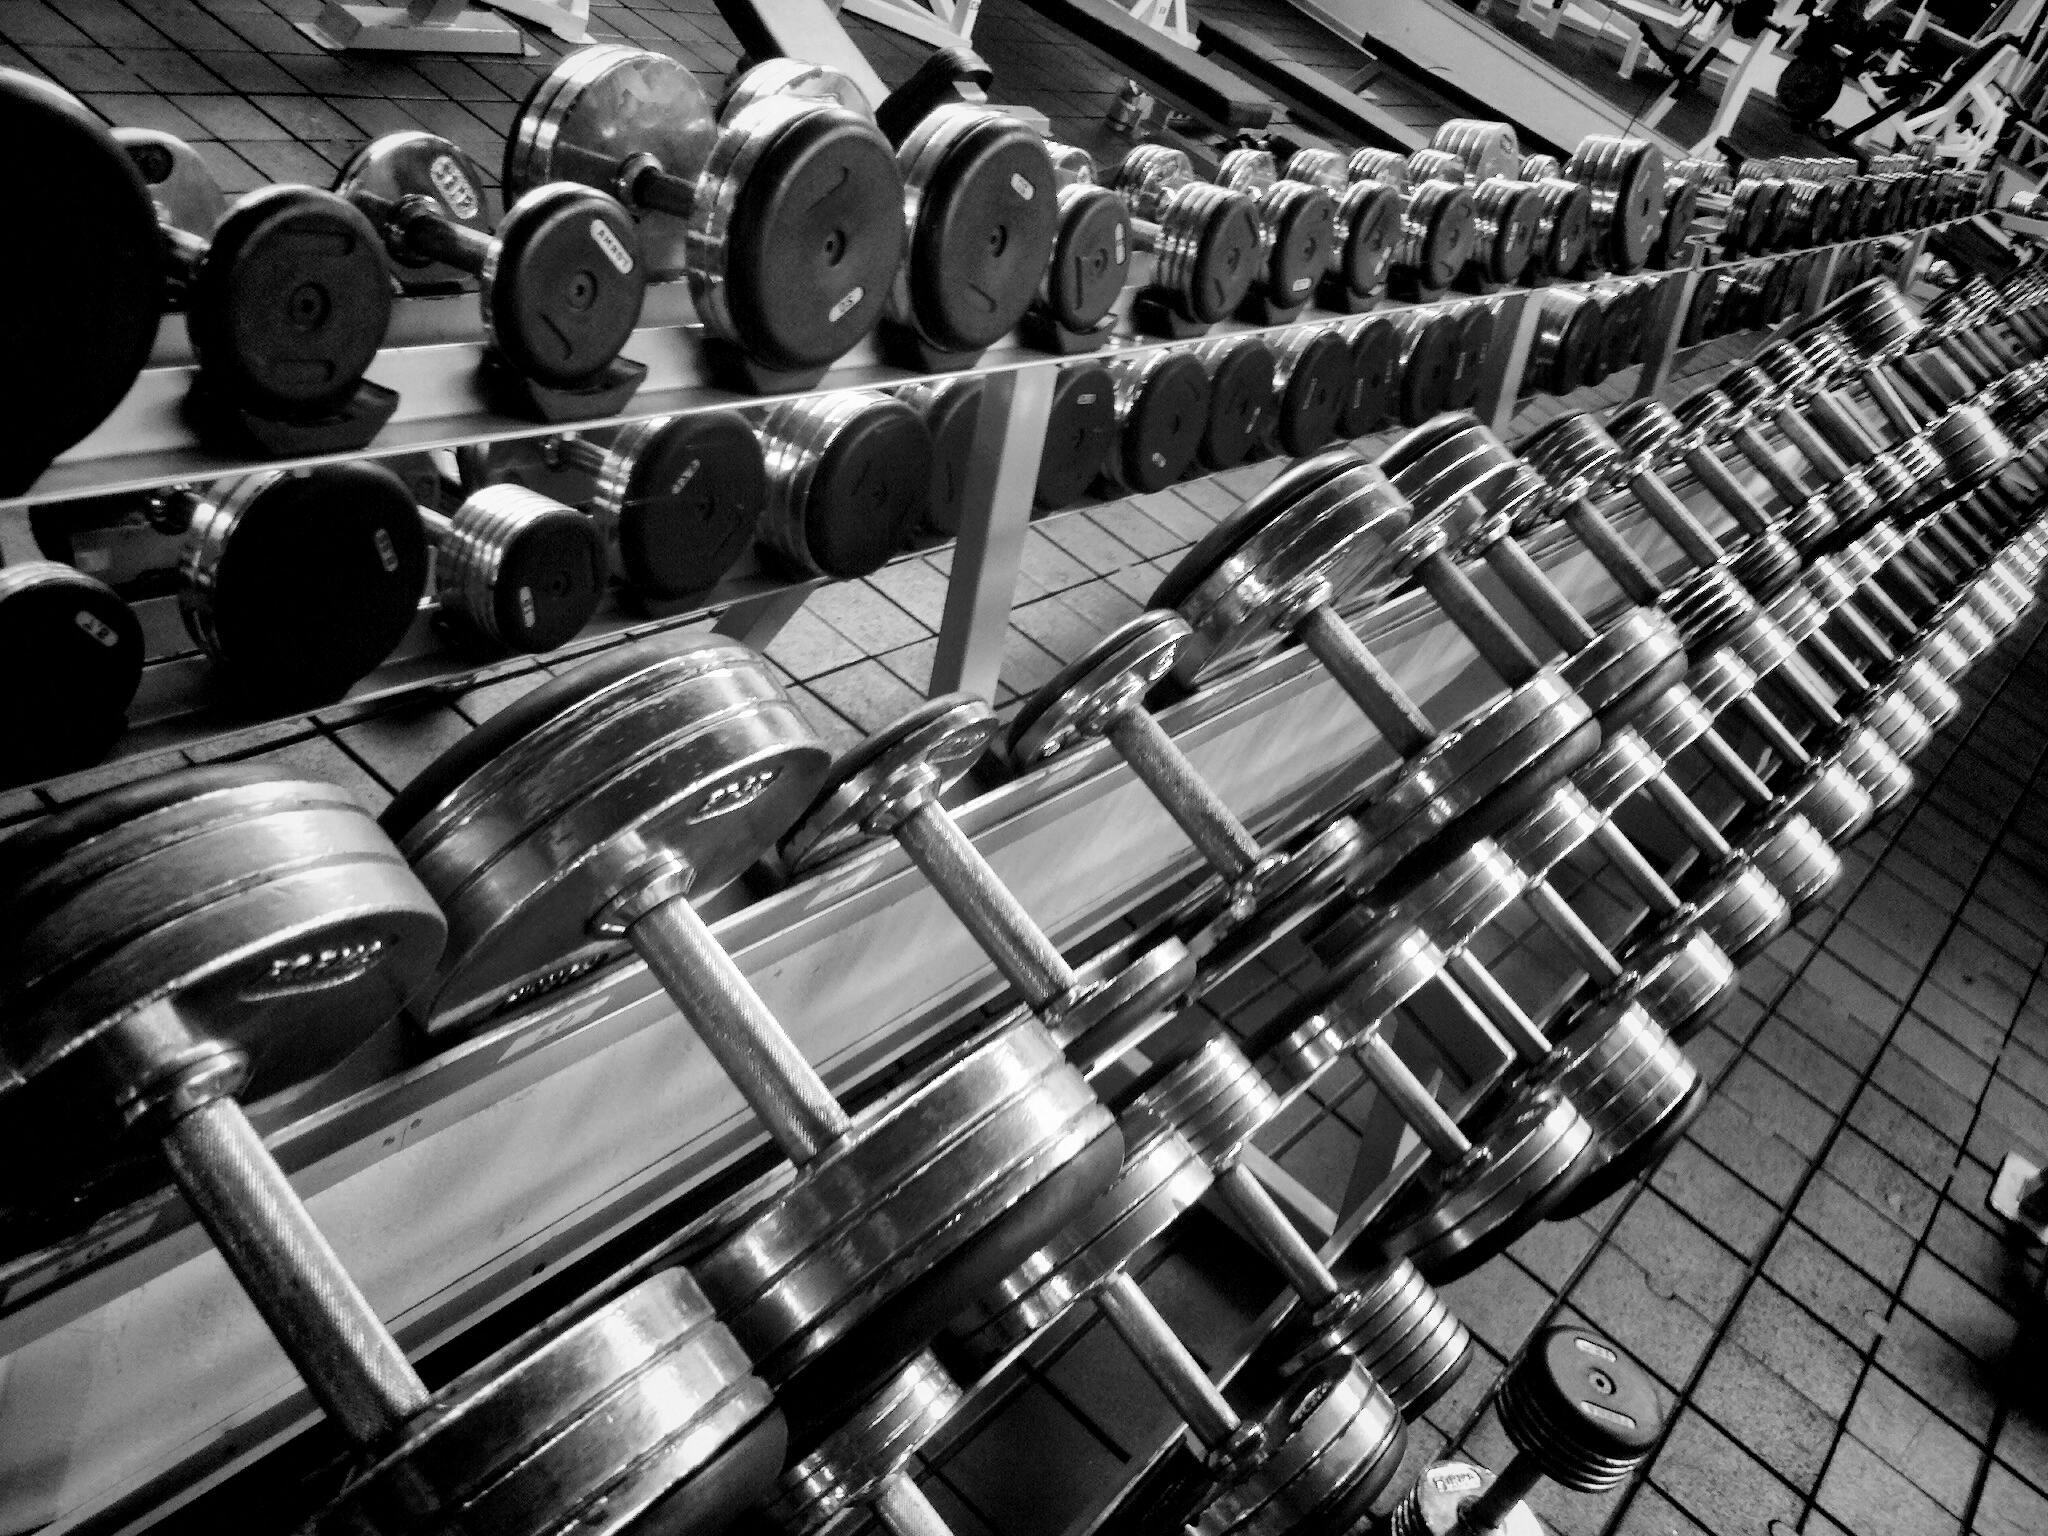 Best Adjustable Dumbbells | Dumbbell Reviews in 2016